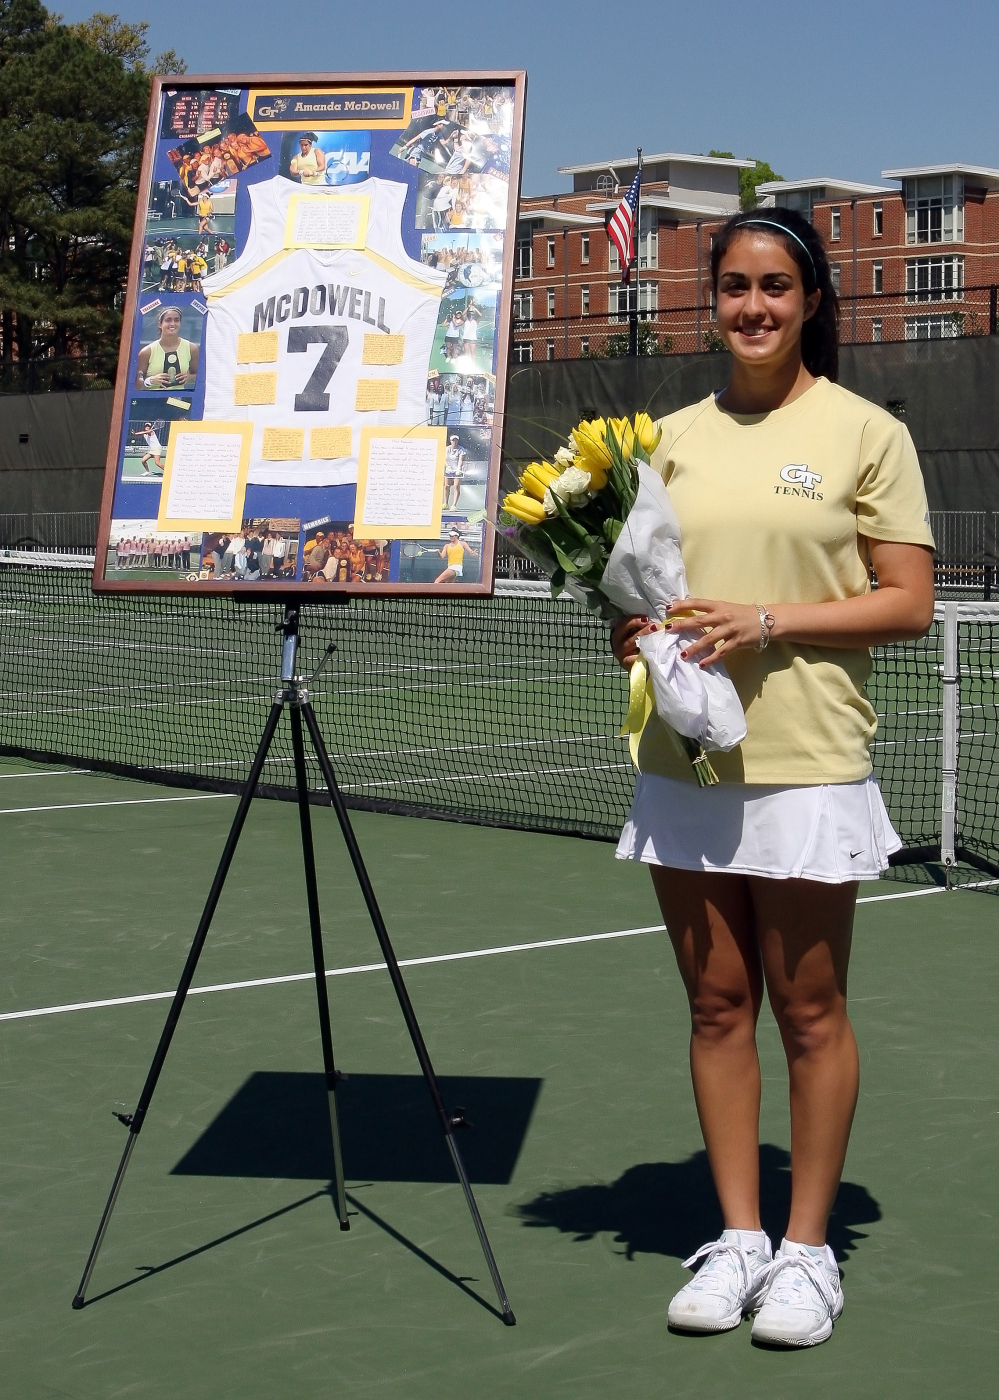 The Georgia Tech Women's Tennis Team honored senior Amanda McDowell on Senior Day